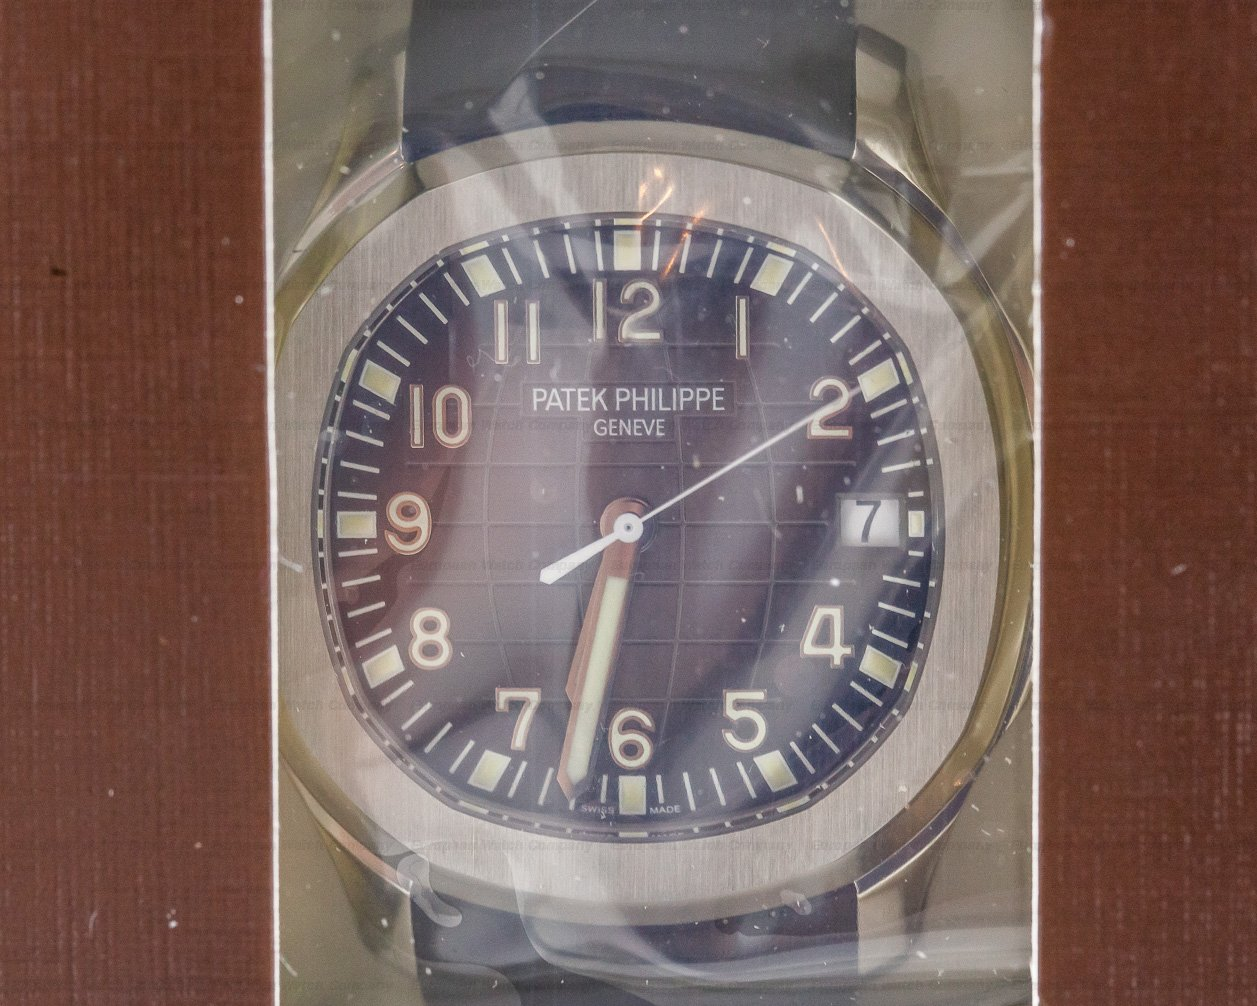 Patek Philippe 5167A-001 Aquanaut SS / Rubber DOUBLE SEALED